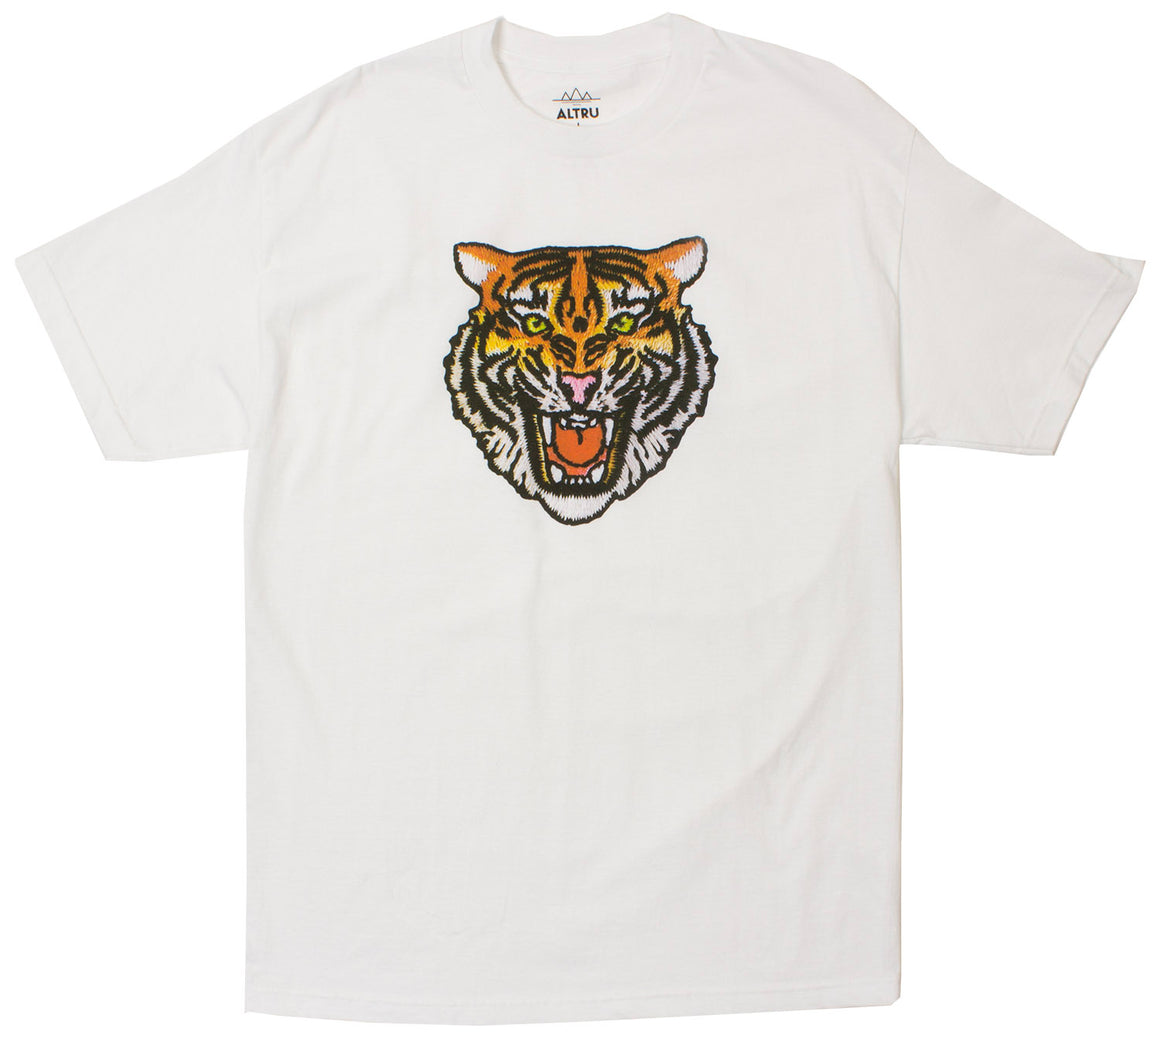 Angry Tiger Graphic Tee in White by Altru Apparel